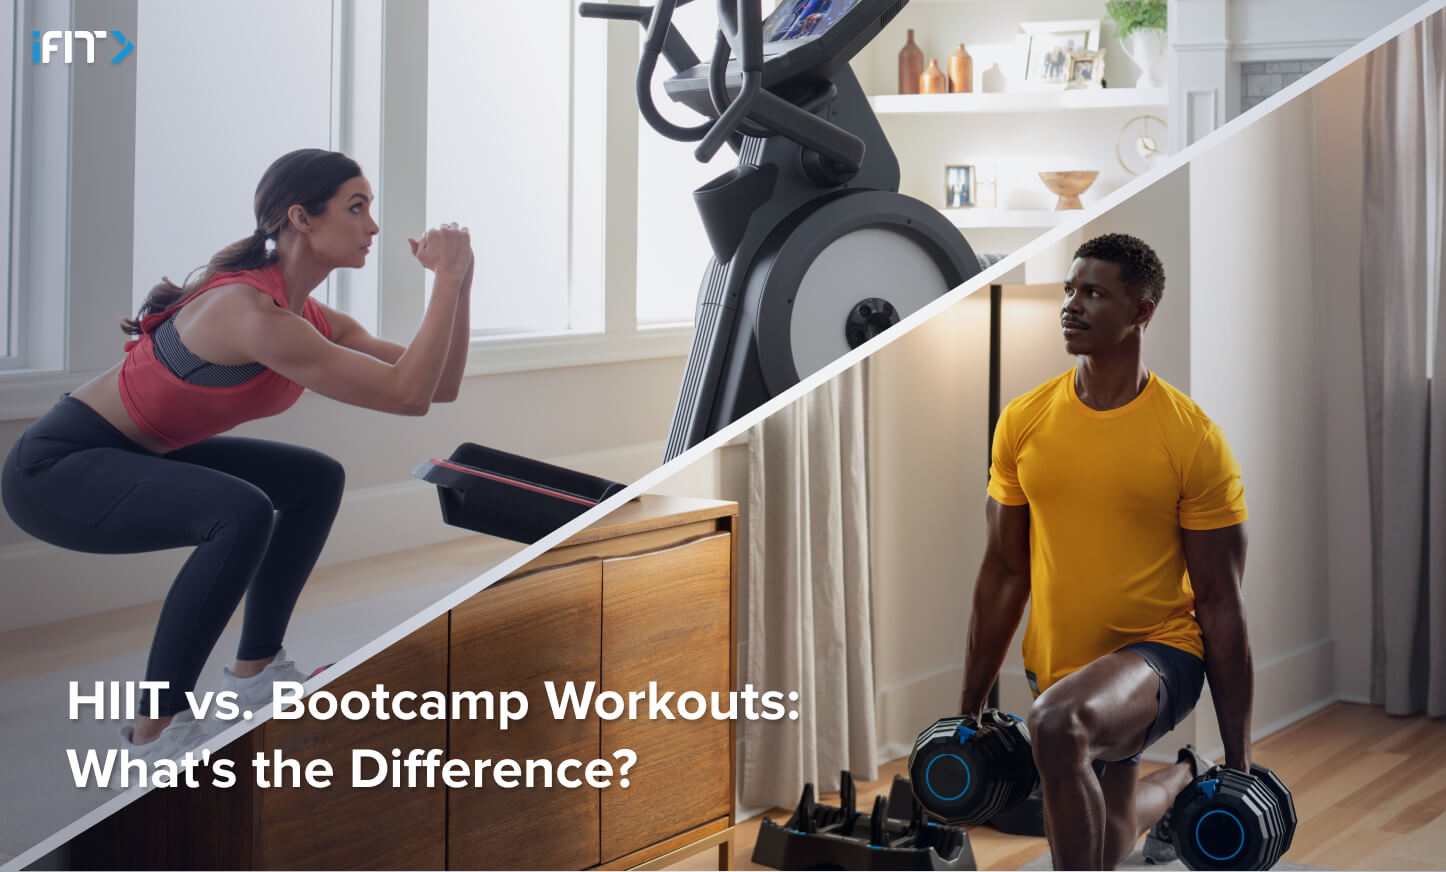 HIIT vs. bootcamp workouts: what's the difference?